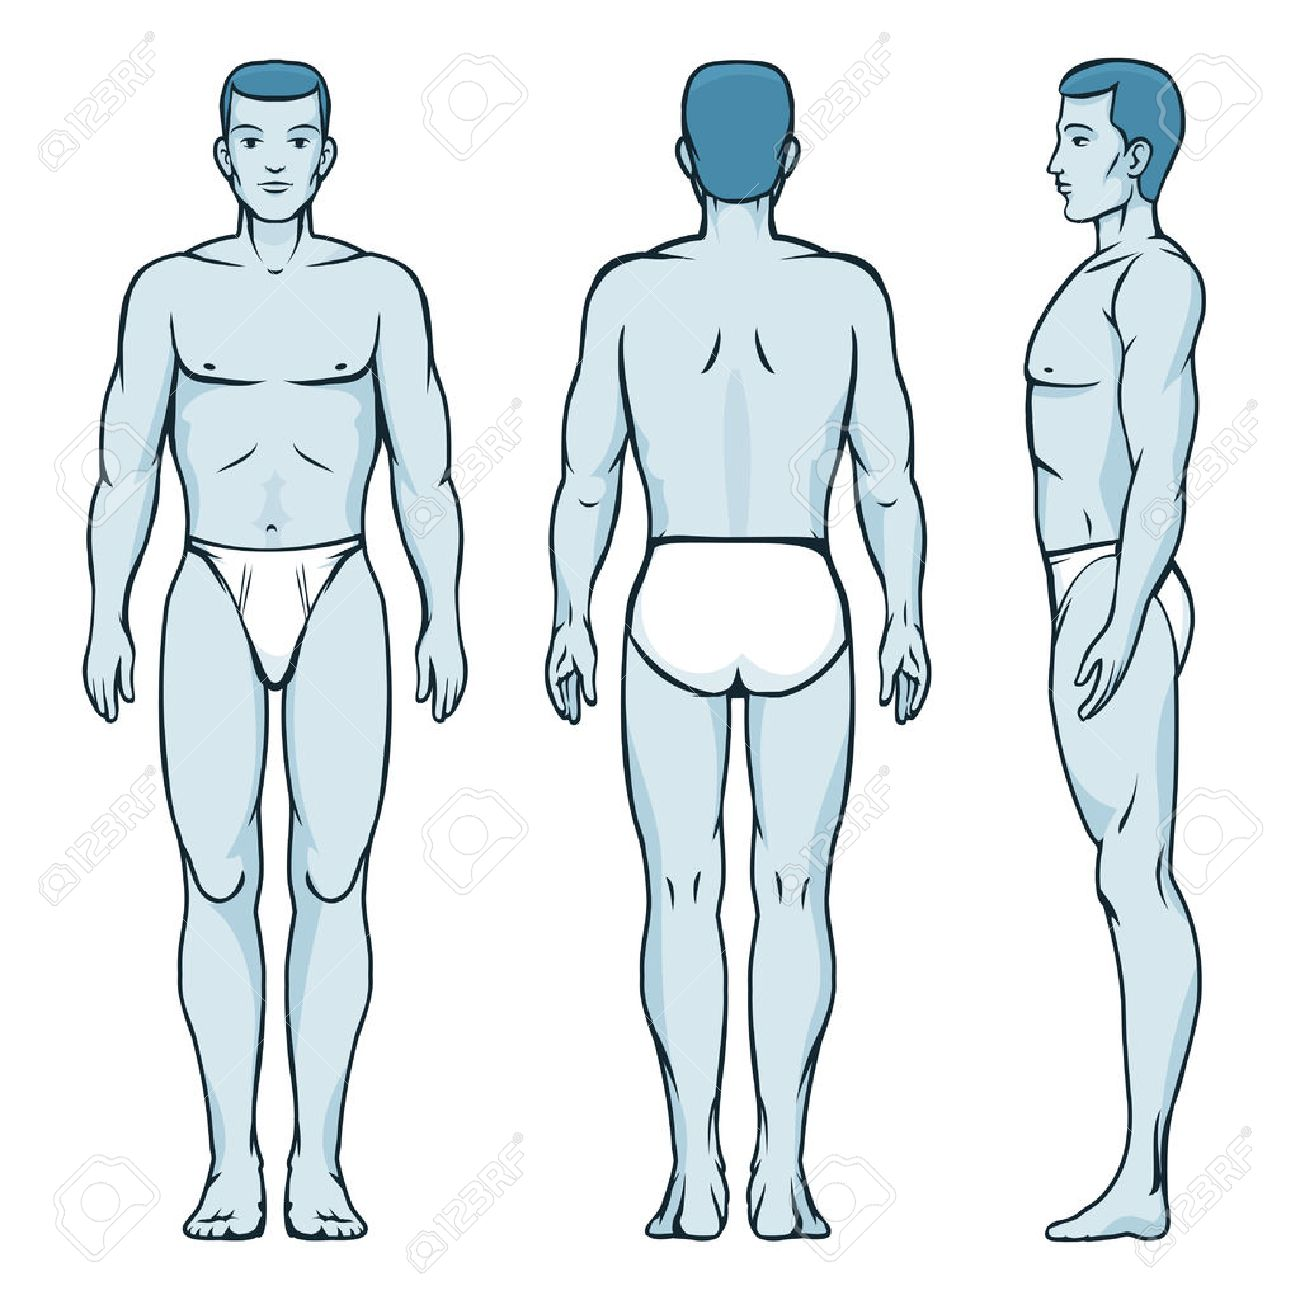 Man Body Model Front Back And Side Human Poses Royalty Free Cliparts Vectors And Stock Illustration Image 39567220